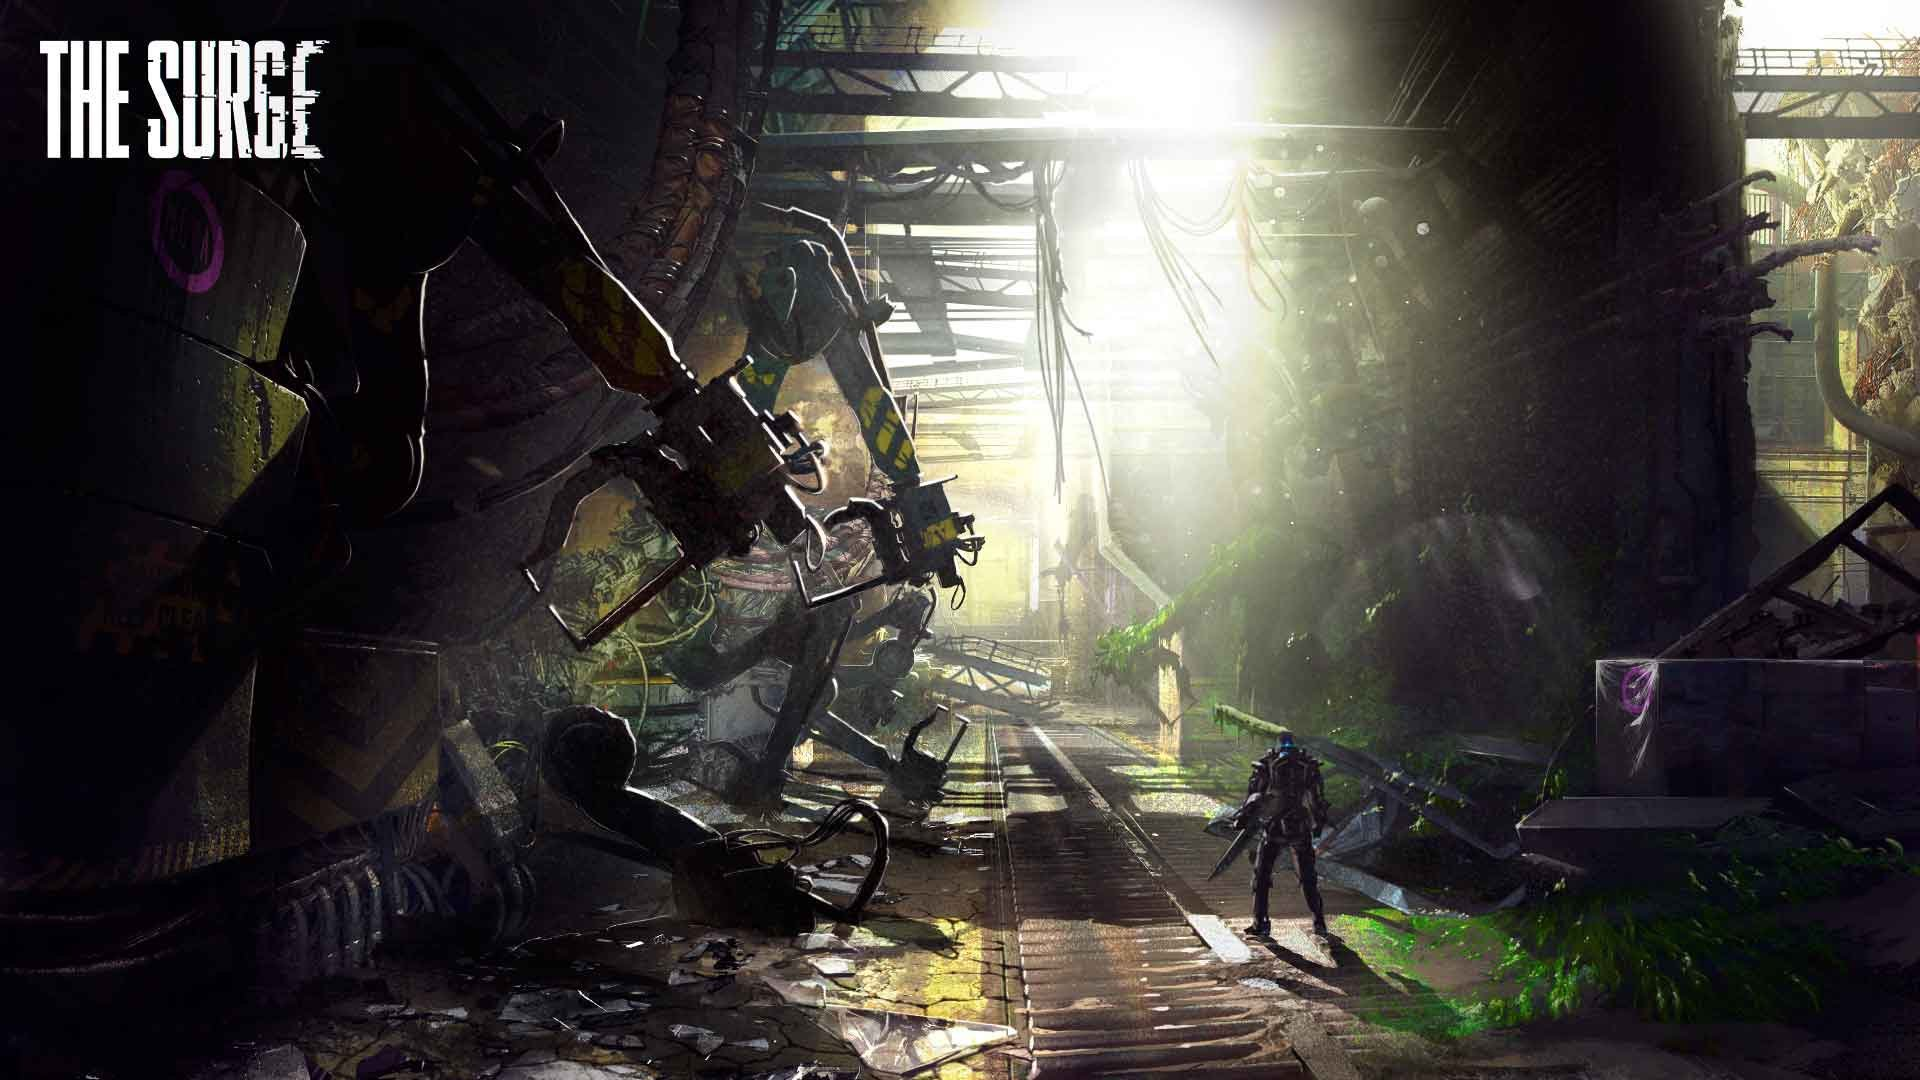 The Surge Images